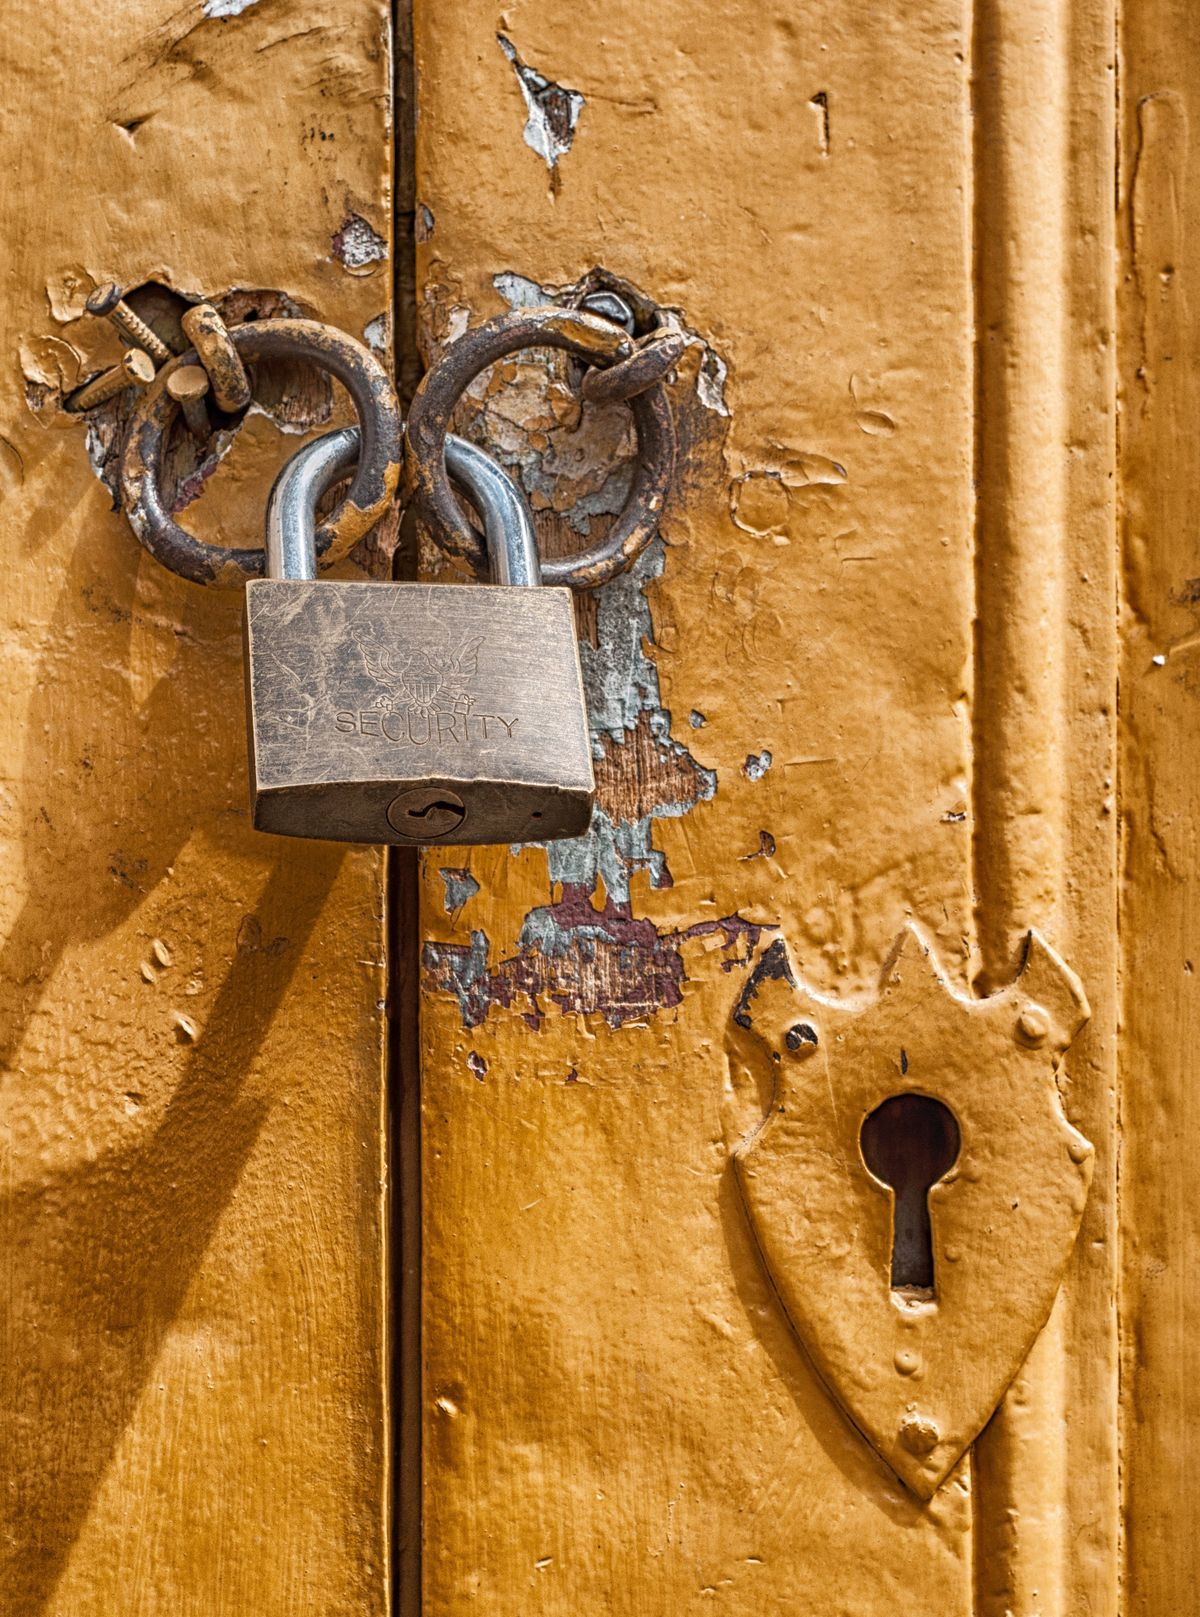 Securing Kubernetes secrets: How to efficiently secure access to etcd and protect your secrets